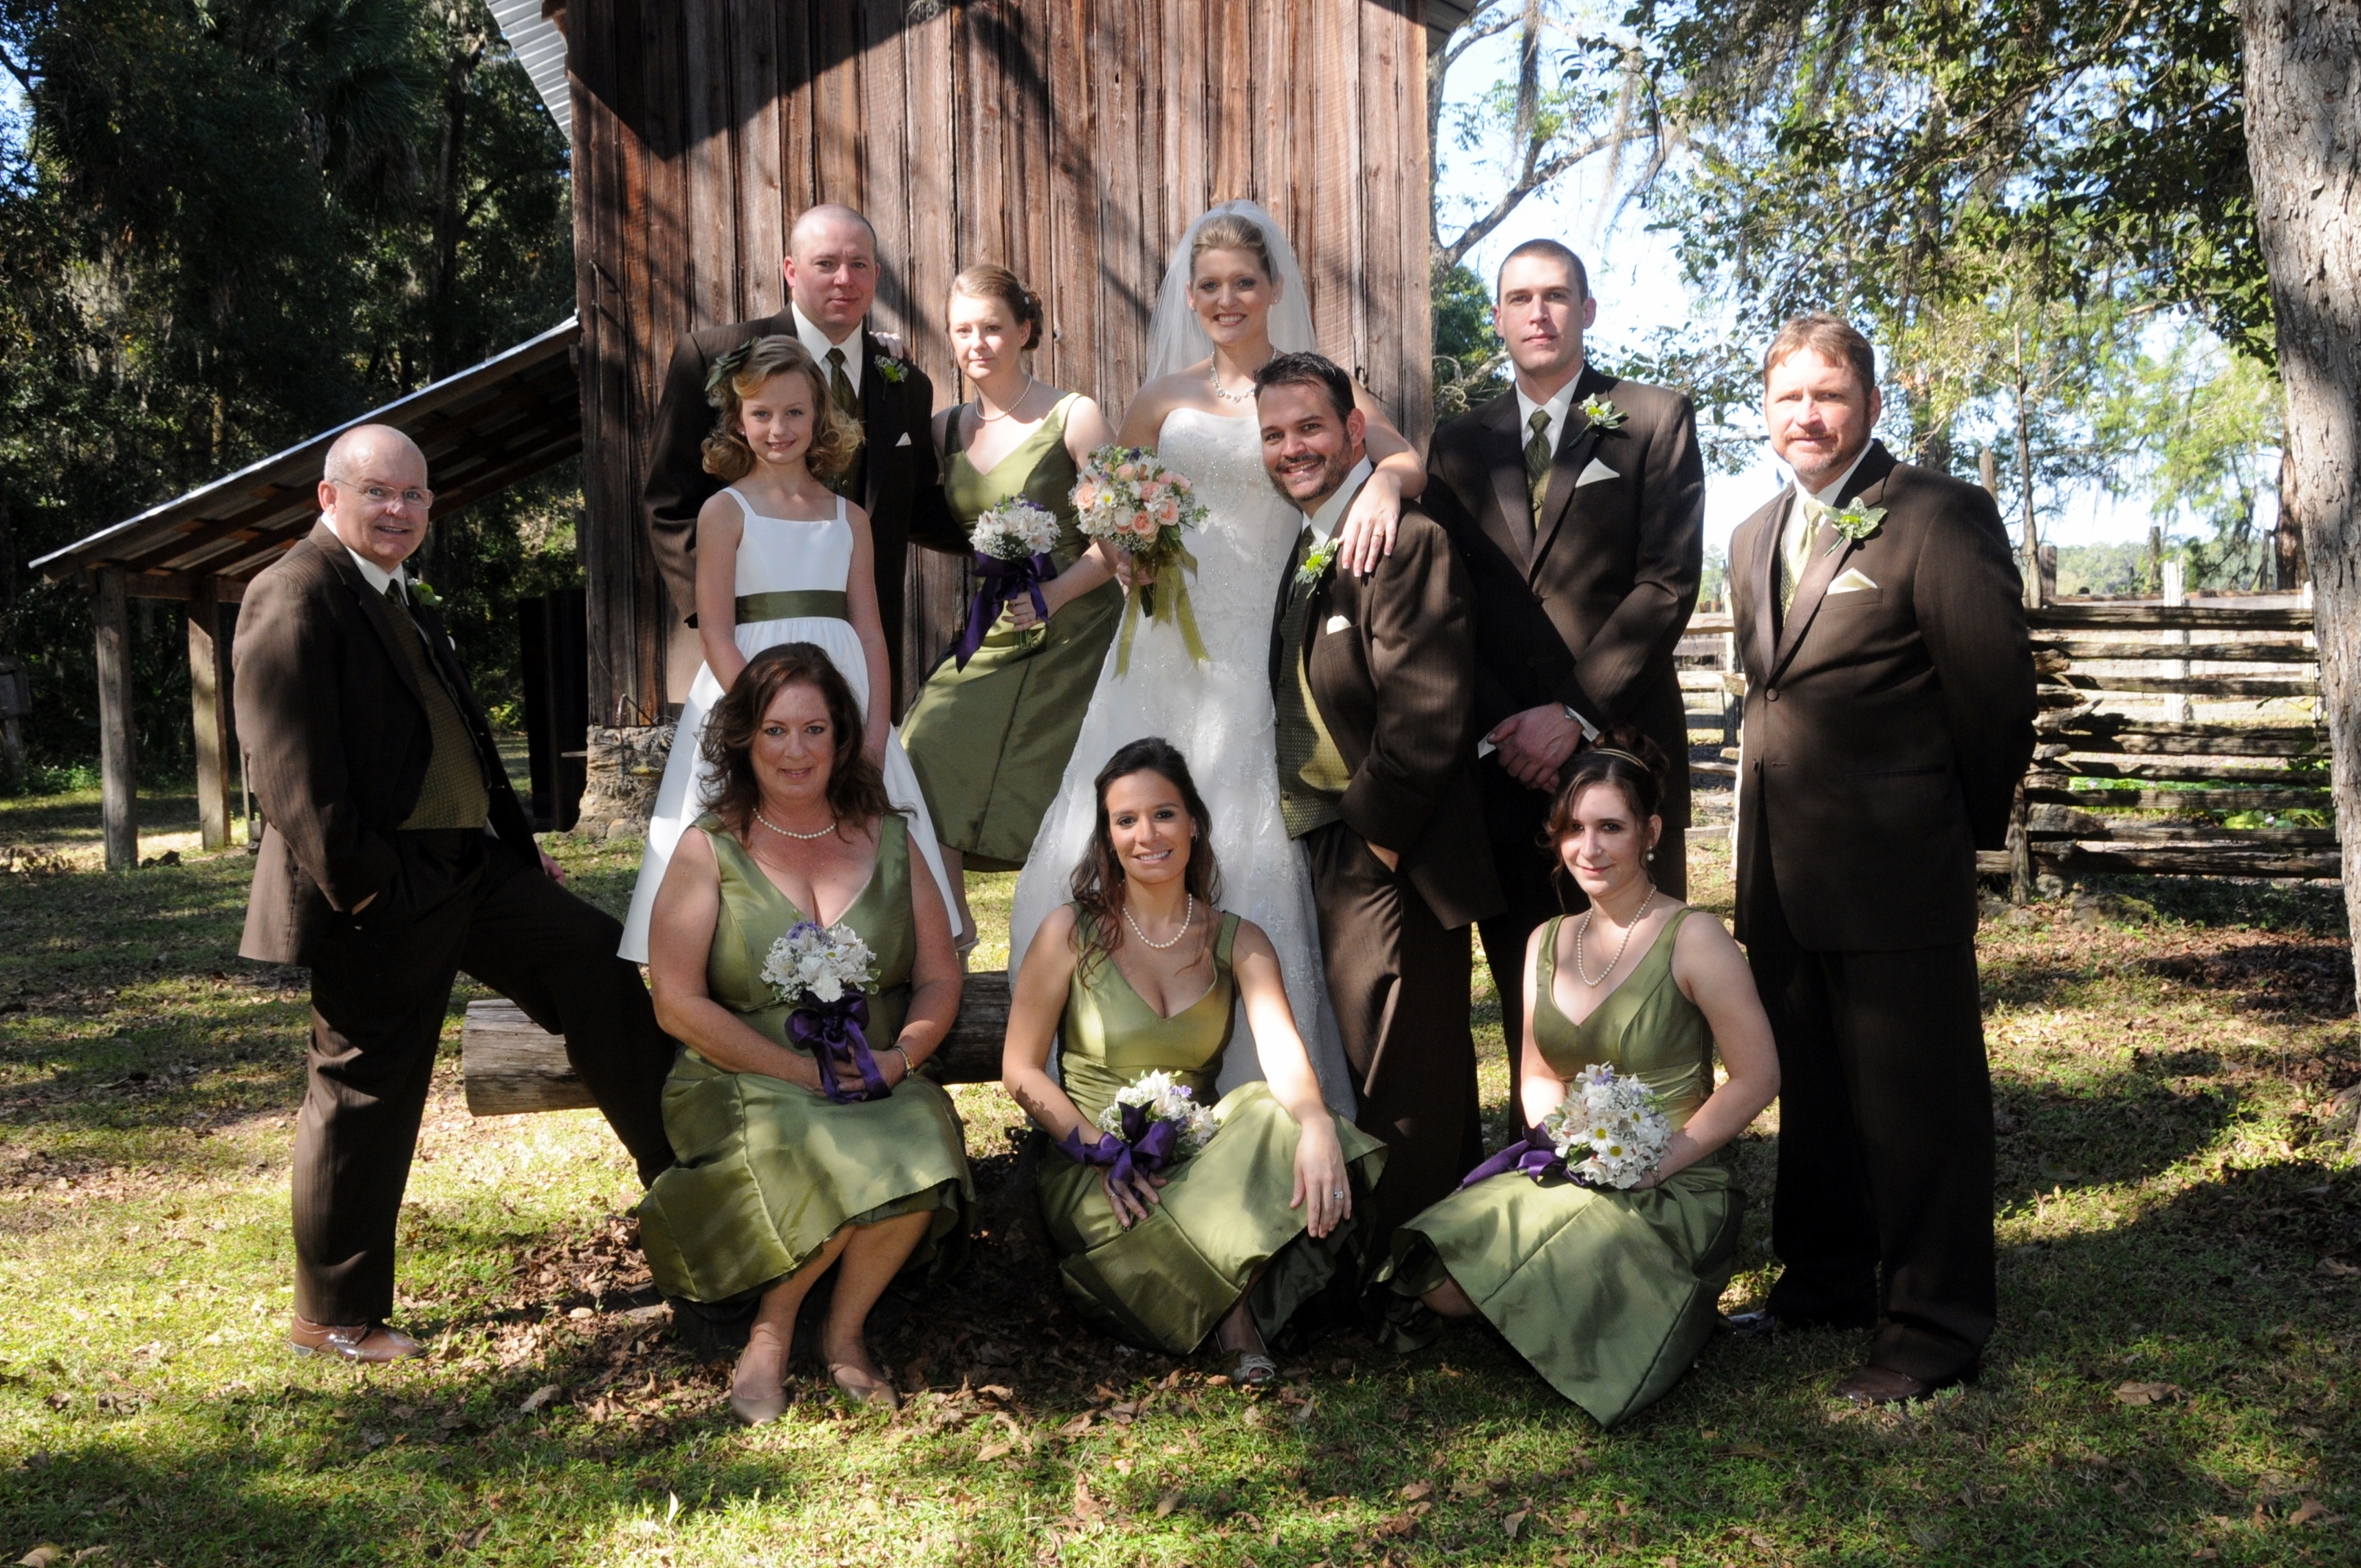 Bridesmaids, Bridesmaids Dresses, Vintage Wedding Dresses, Fashion, green, brown, Vintage, Rustic, Groomsmen, Wedding, Party, Farm, Antique, rustic wedding dresses